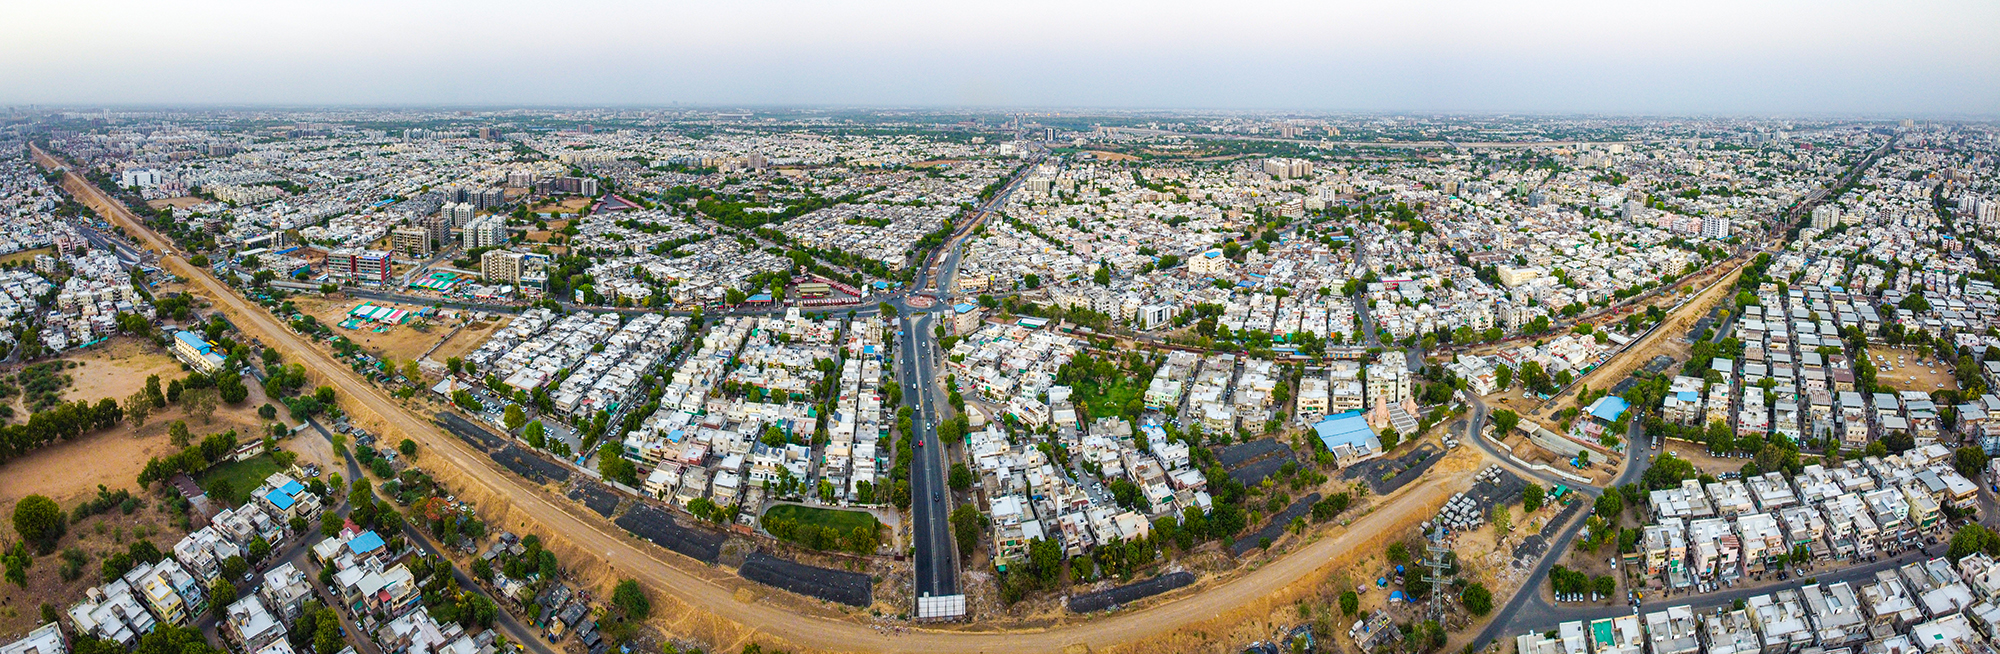 Looks like a Big Smile, as we look at the city of Ahmedabad expanding on both the sides.